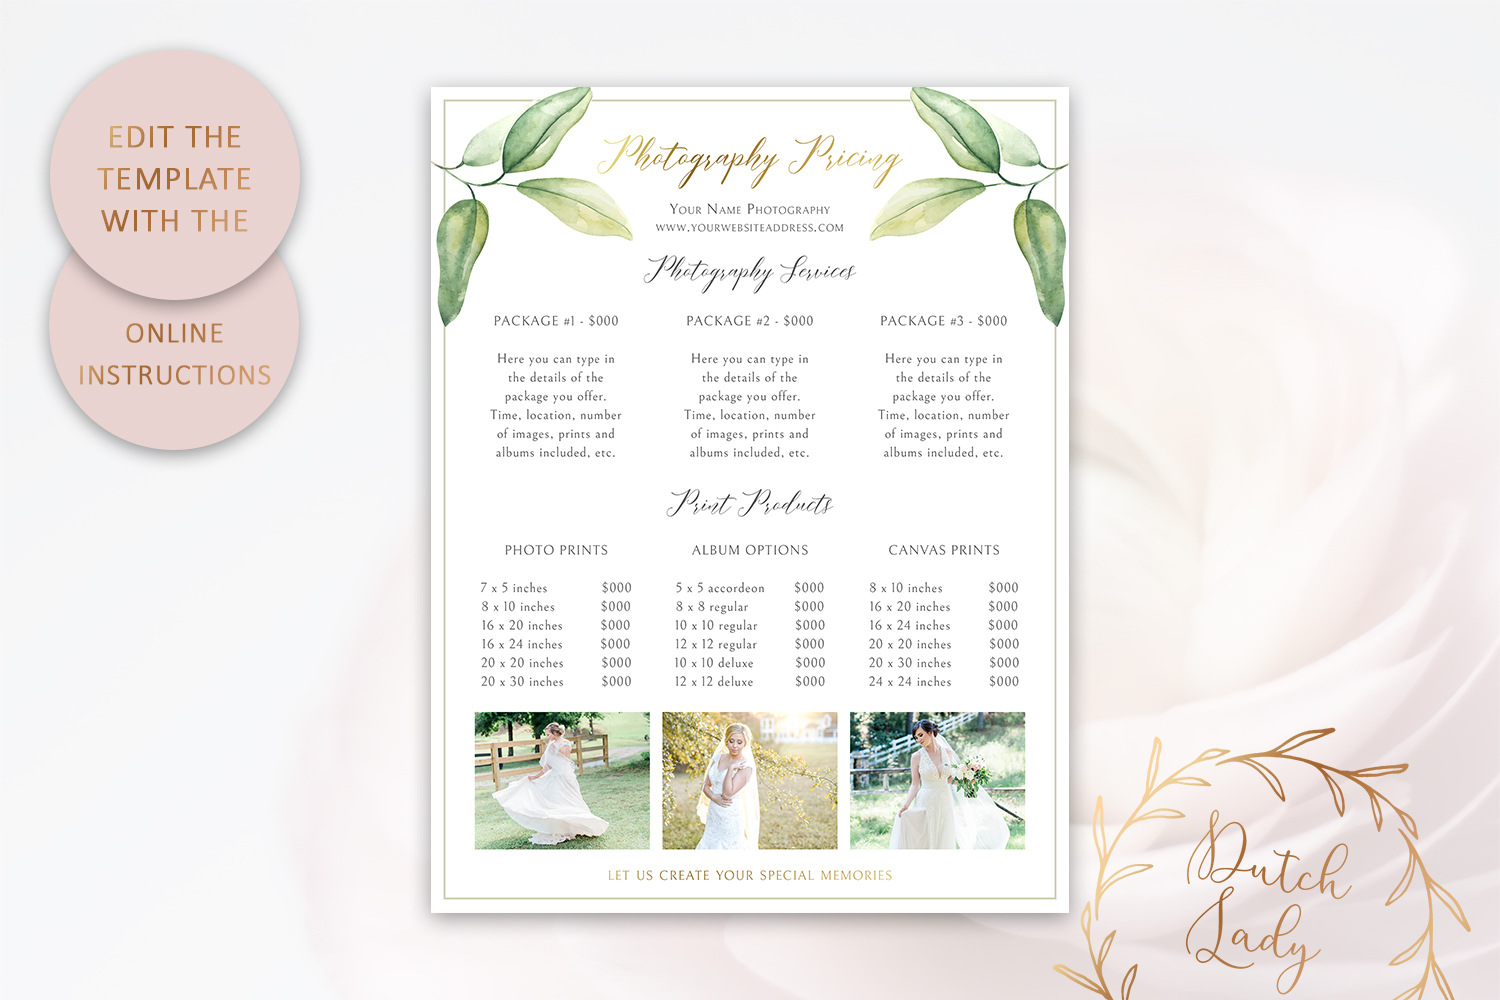 PSD Photography Pricing Guide Template Design #10 example image 5